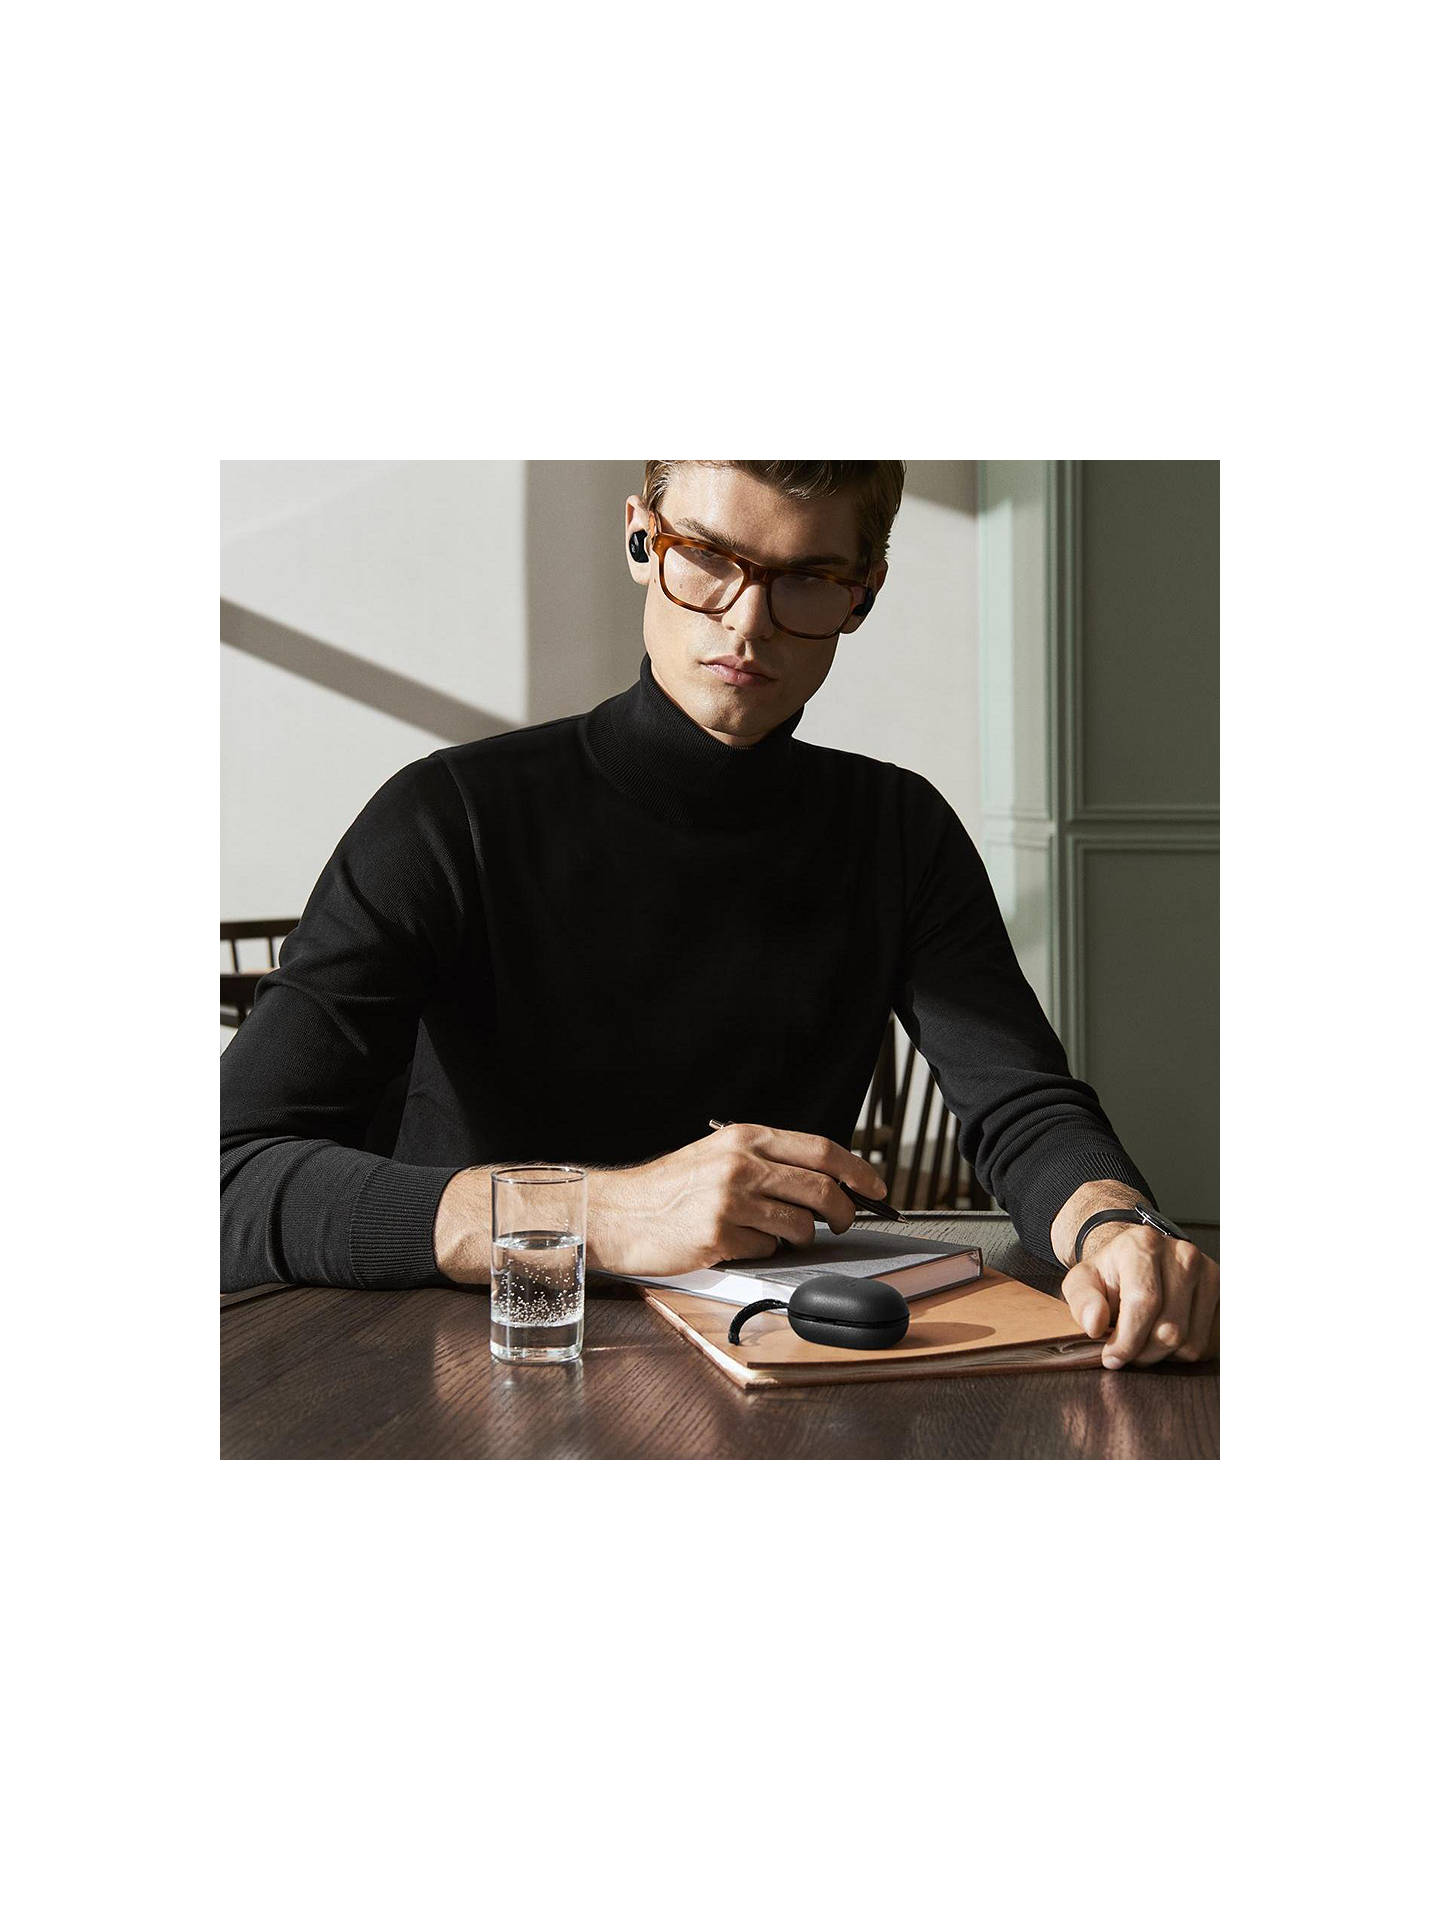 BuyB&O PLAY by Bang & Olufsen Beoplay E8 True Wireless Bluetooth In-Ear Headphones with Mic/Remote, Black Online at johnlewis.com